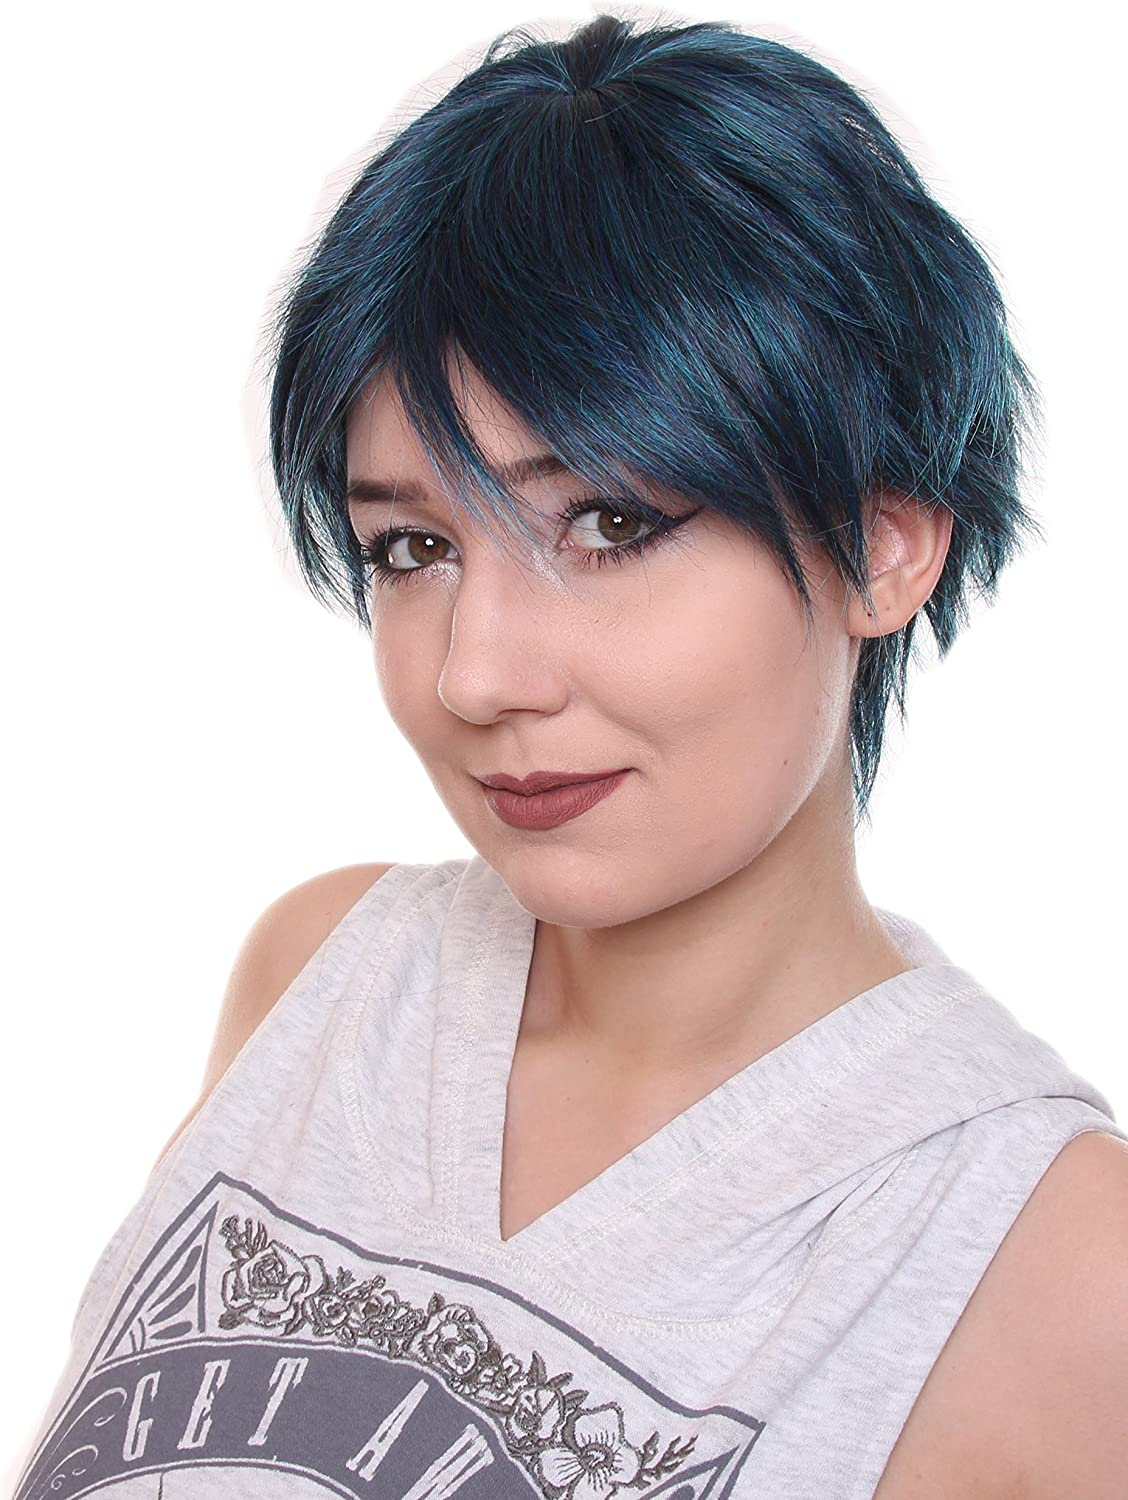 Prettyland C389 Short Hair Wig Wild Fringed Pixie Layered Cut For Everyday Women Men Peacock Green Amazon Co Uk Beauty